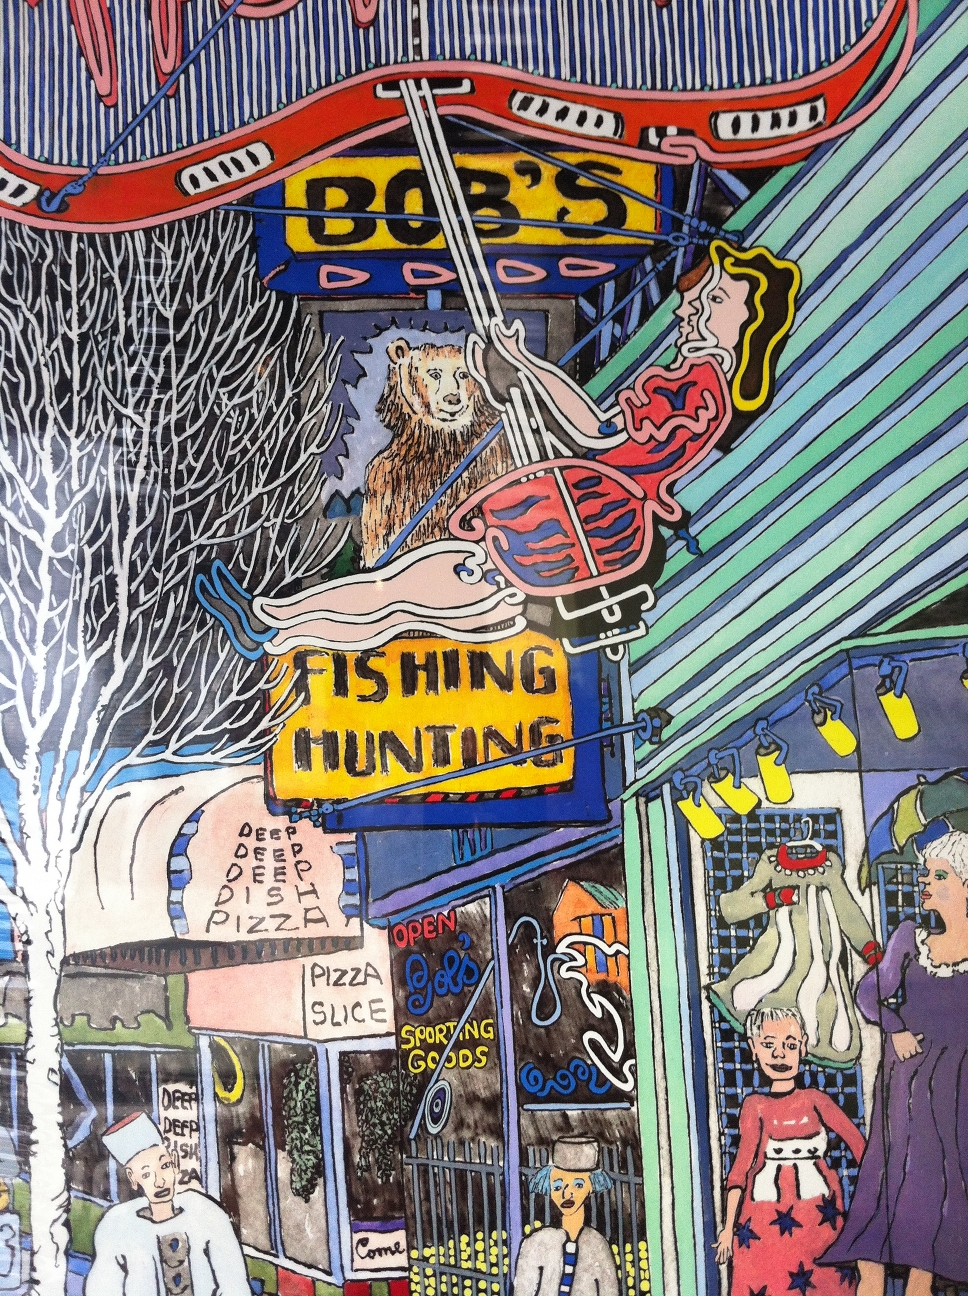 Helen the neon girl loves to swing. Bob the next door bear loves to watch.